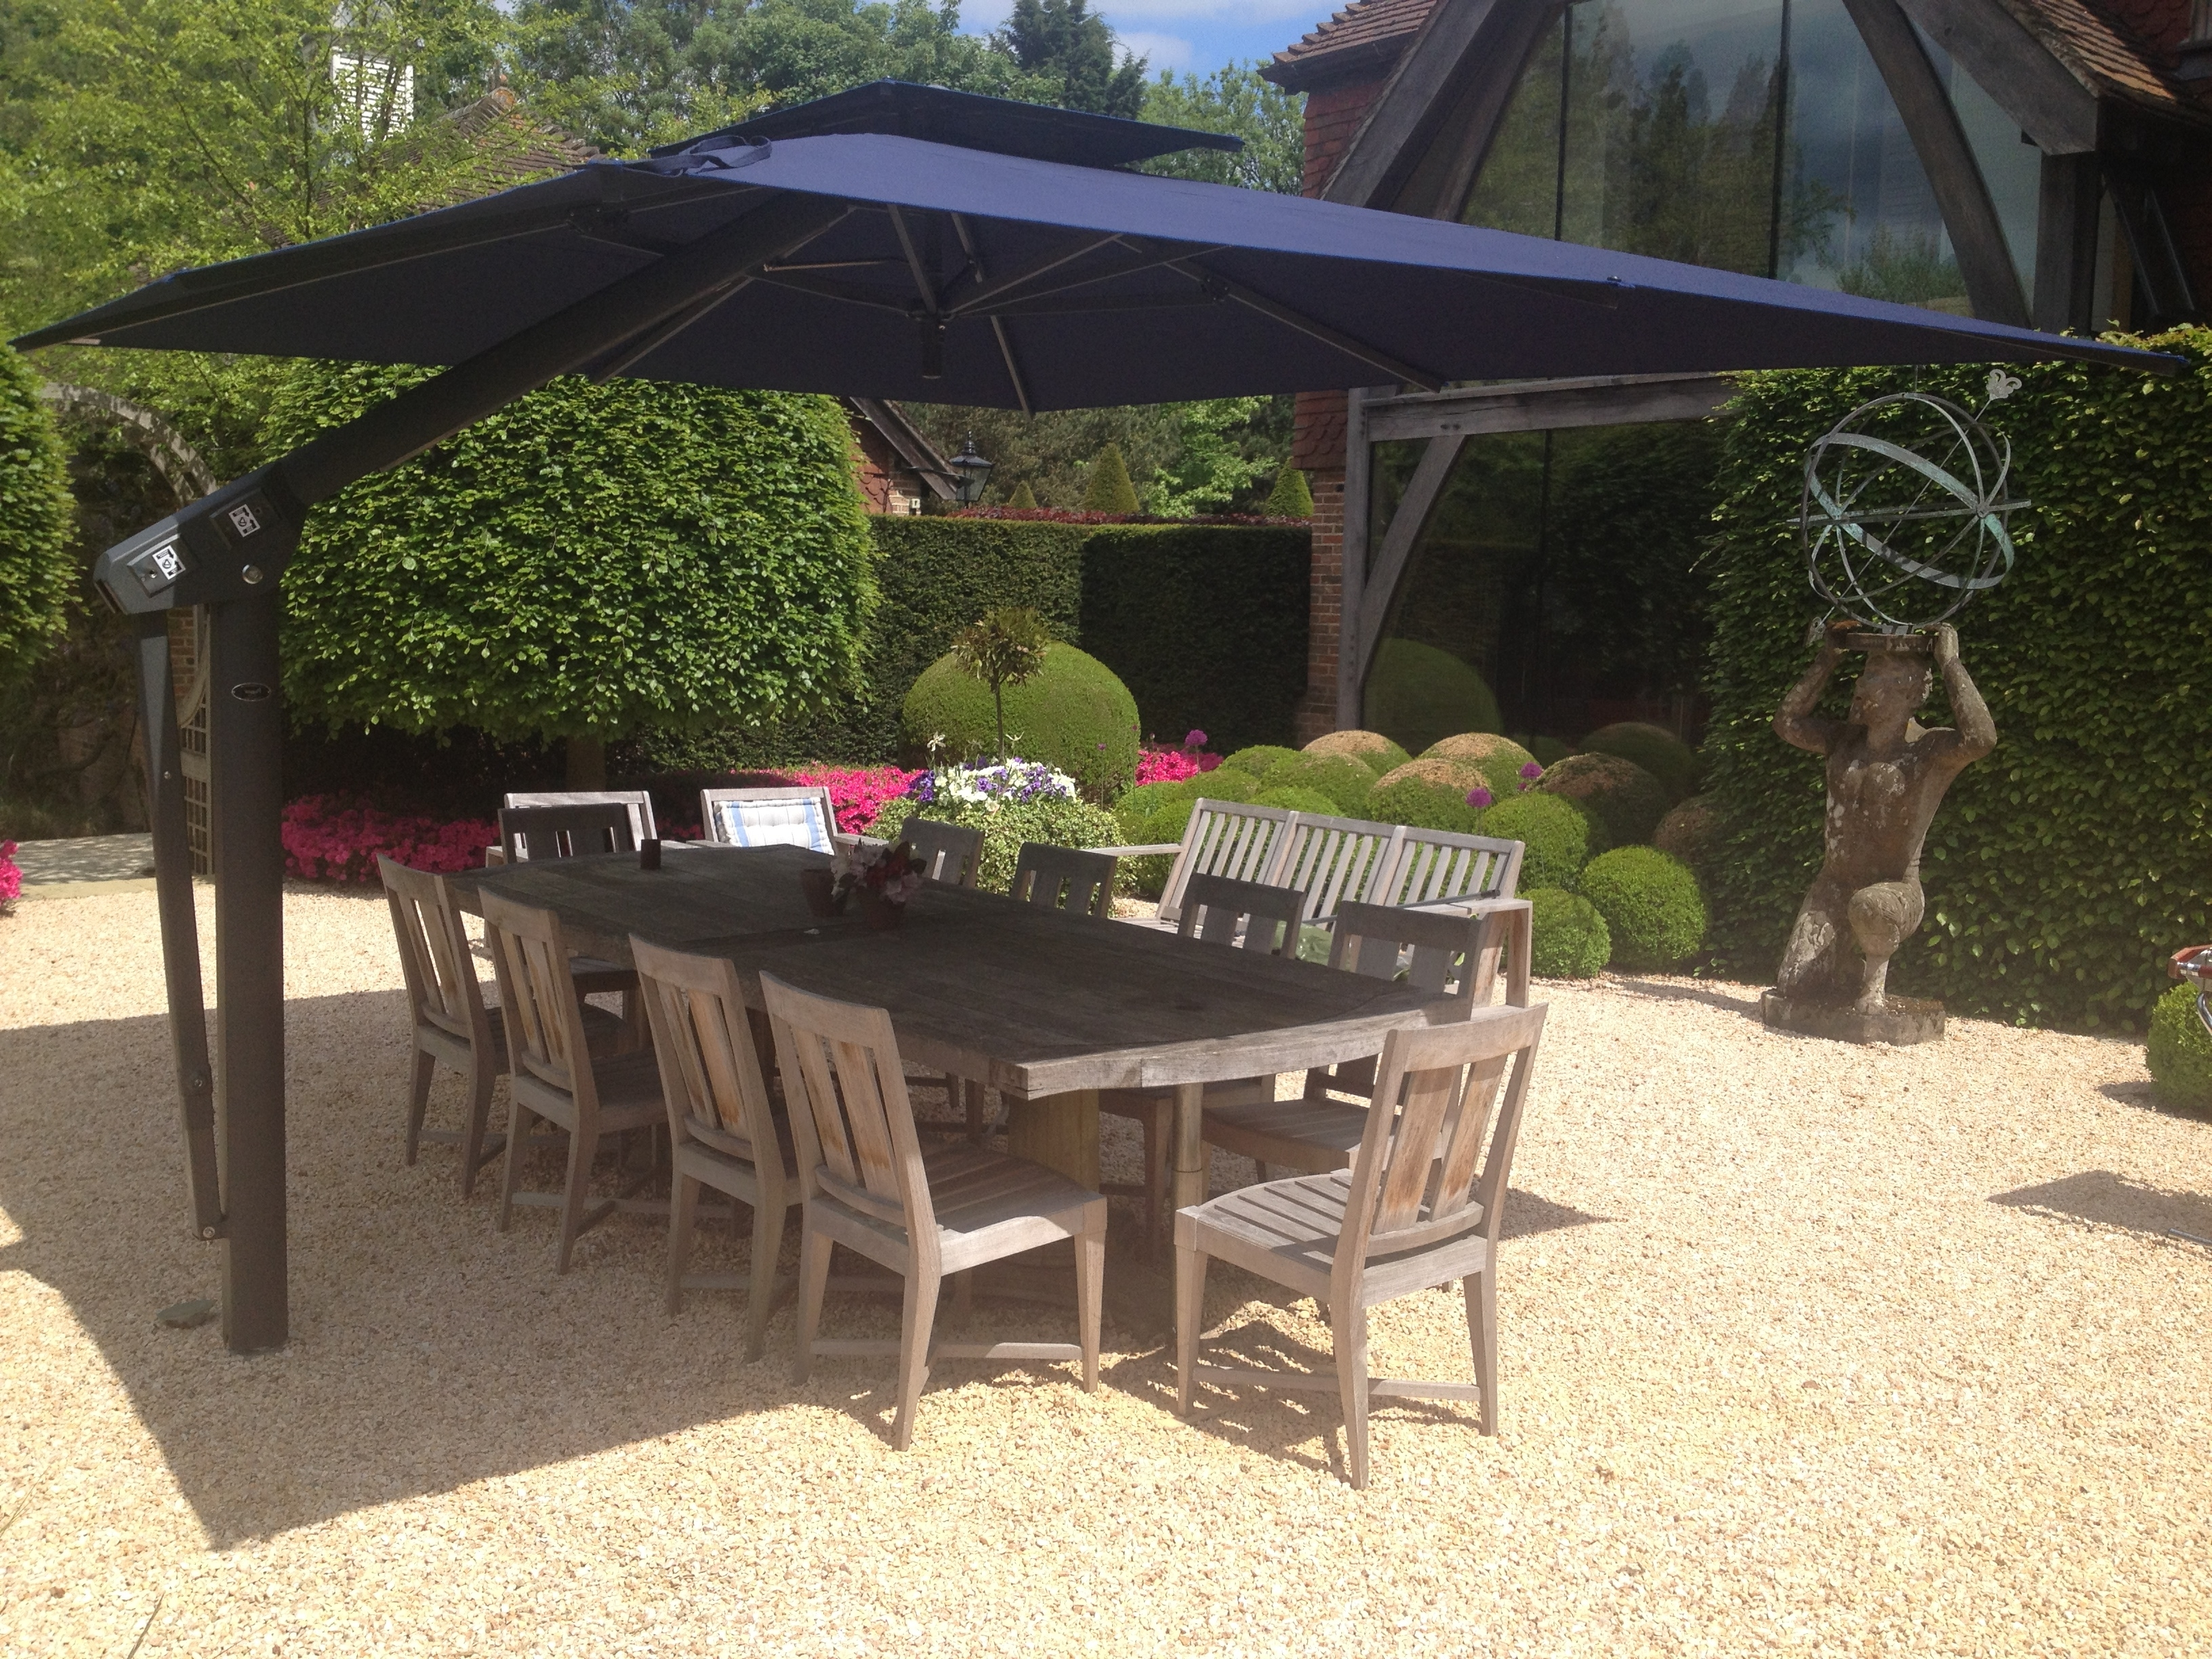 Well Known Heavy Duty Patio Umbrellas Intended For Heavy Duty Patio Umbrellas Uk F84x On Amazing Small Home Decor (View 12 of 20)